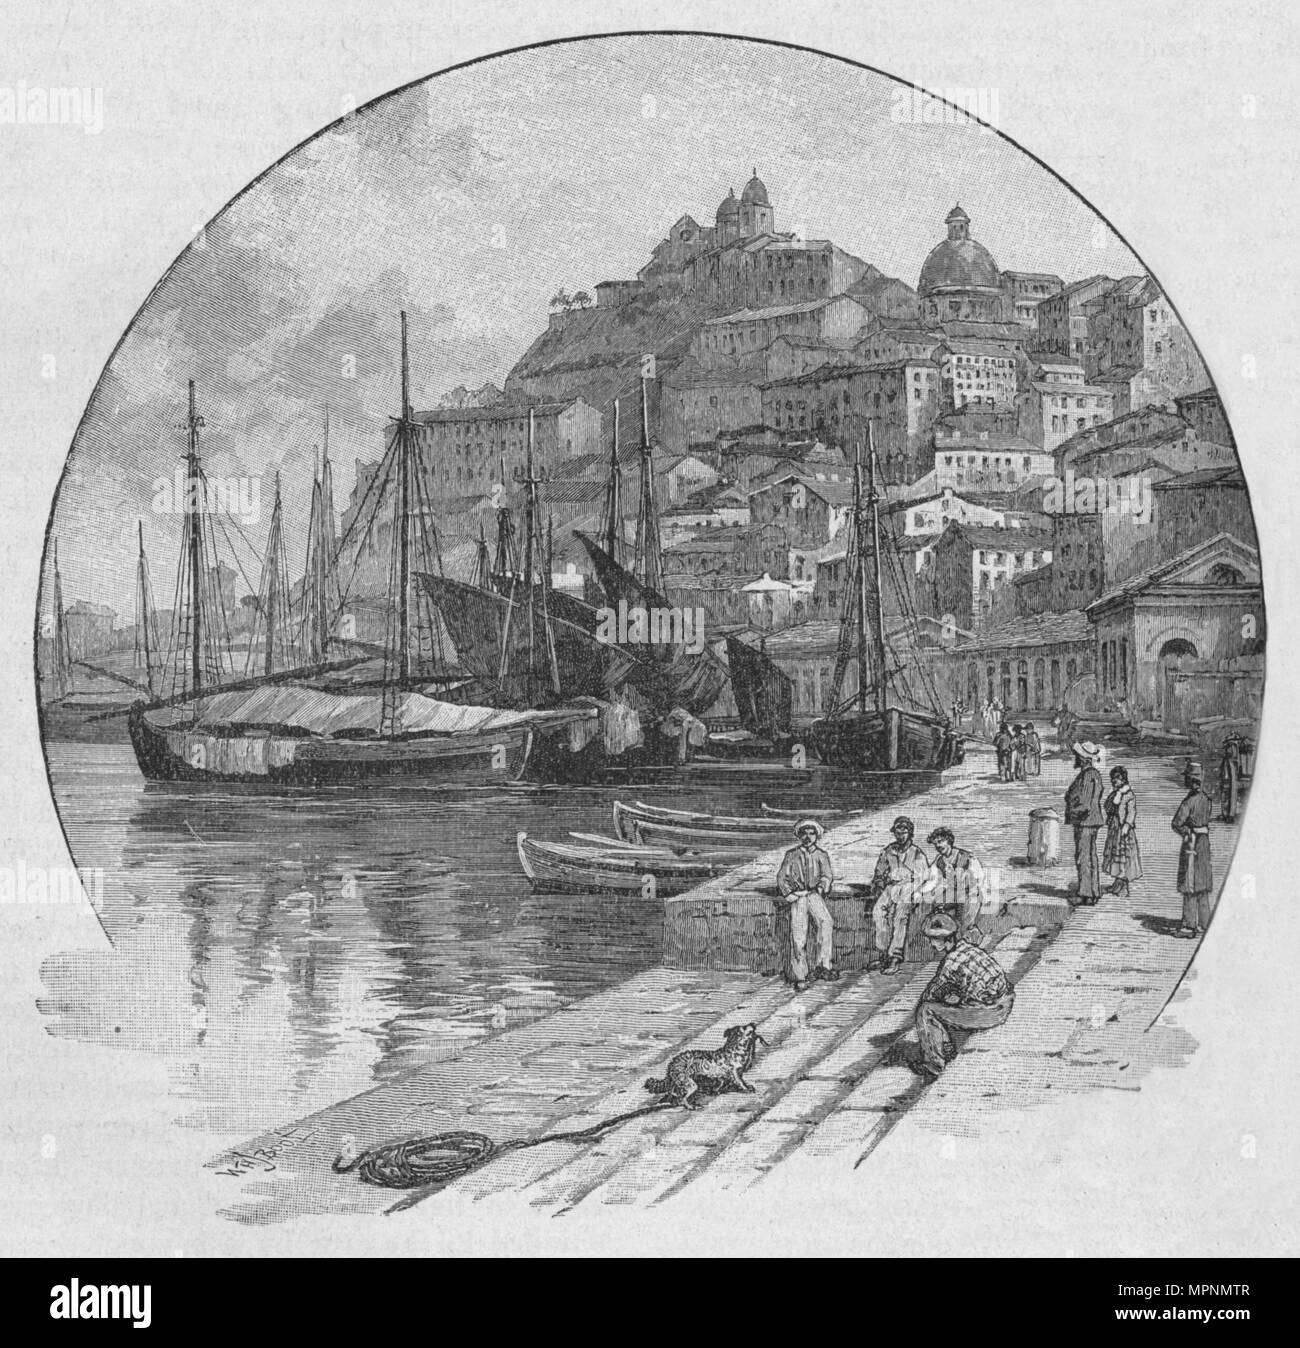 'Ancona', 1902. Artist: William Henry James Boot. - Stock Image